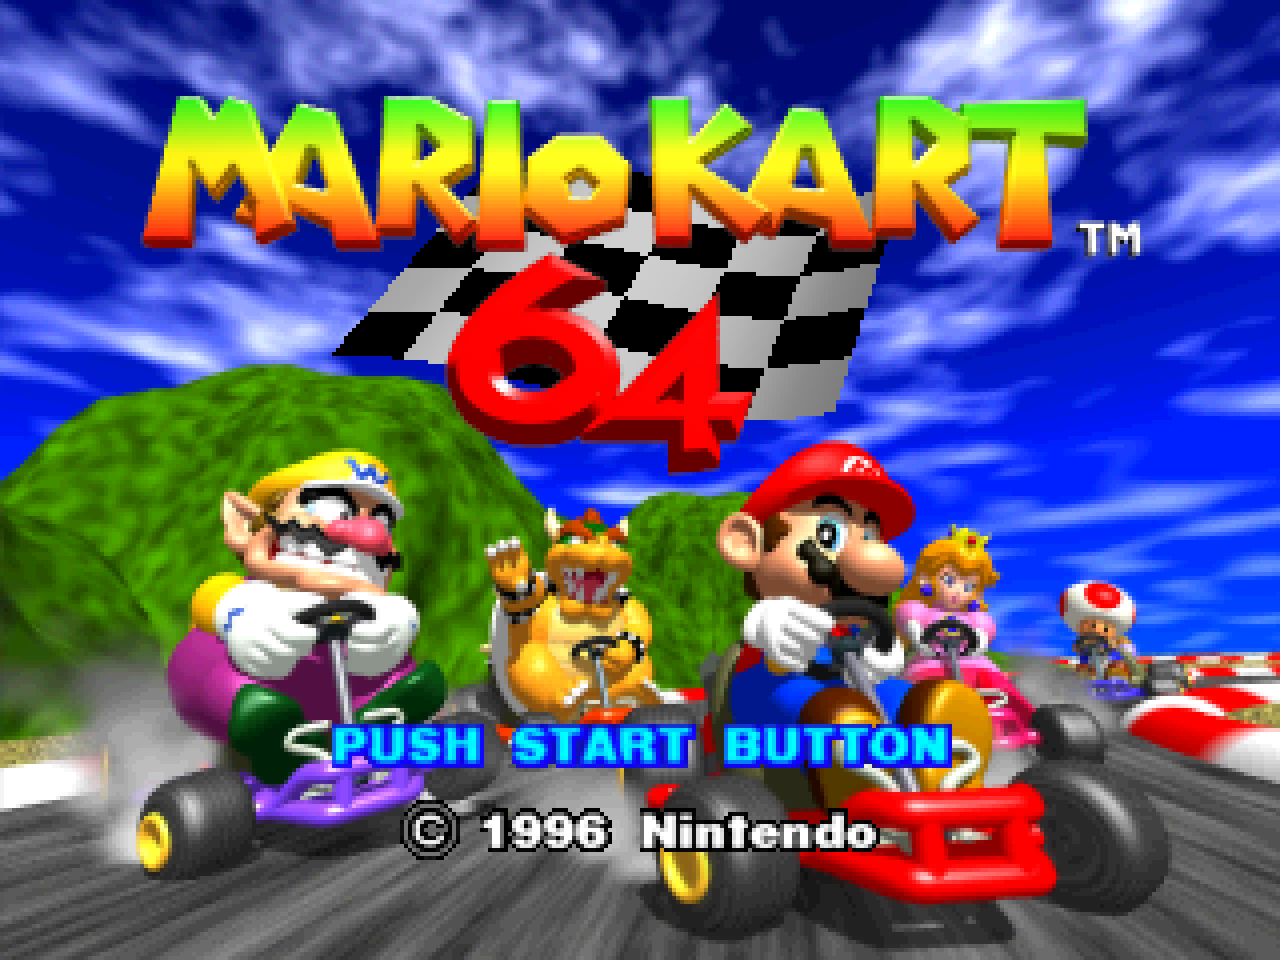 https://s3.eu-west-3.amazonaws.com/games.anthony-dessalles.com/Mario Kart 64 N64 2020 - Screenshots/Mario Kart 64-201118-215705.png